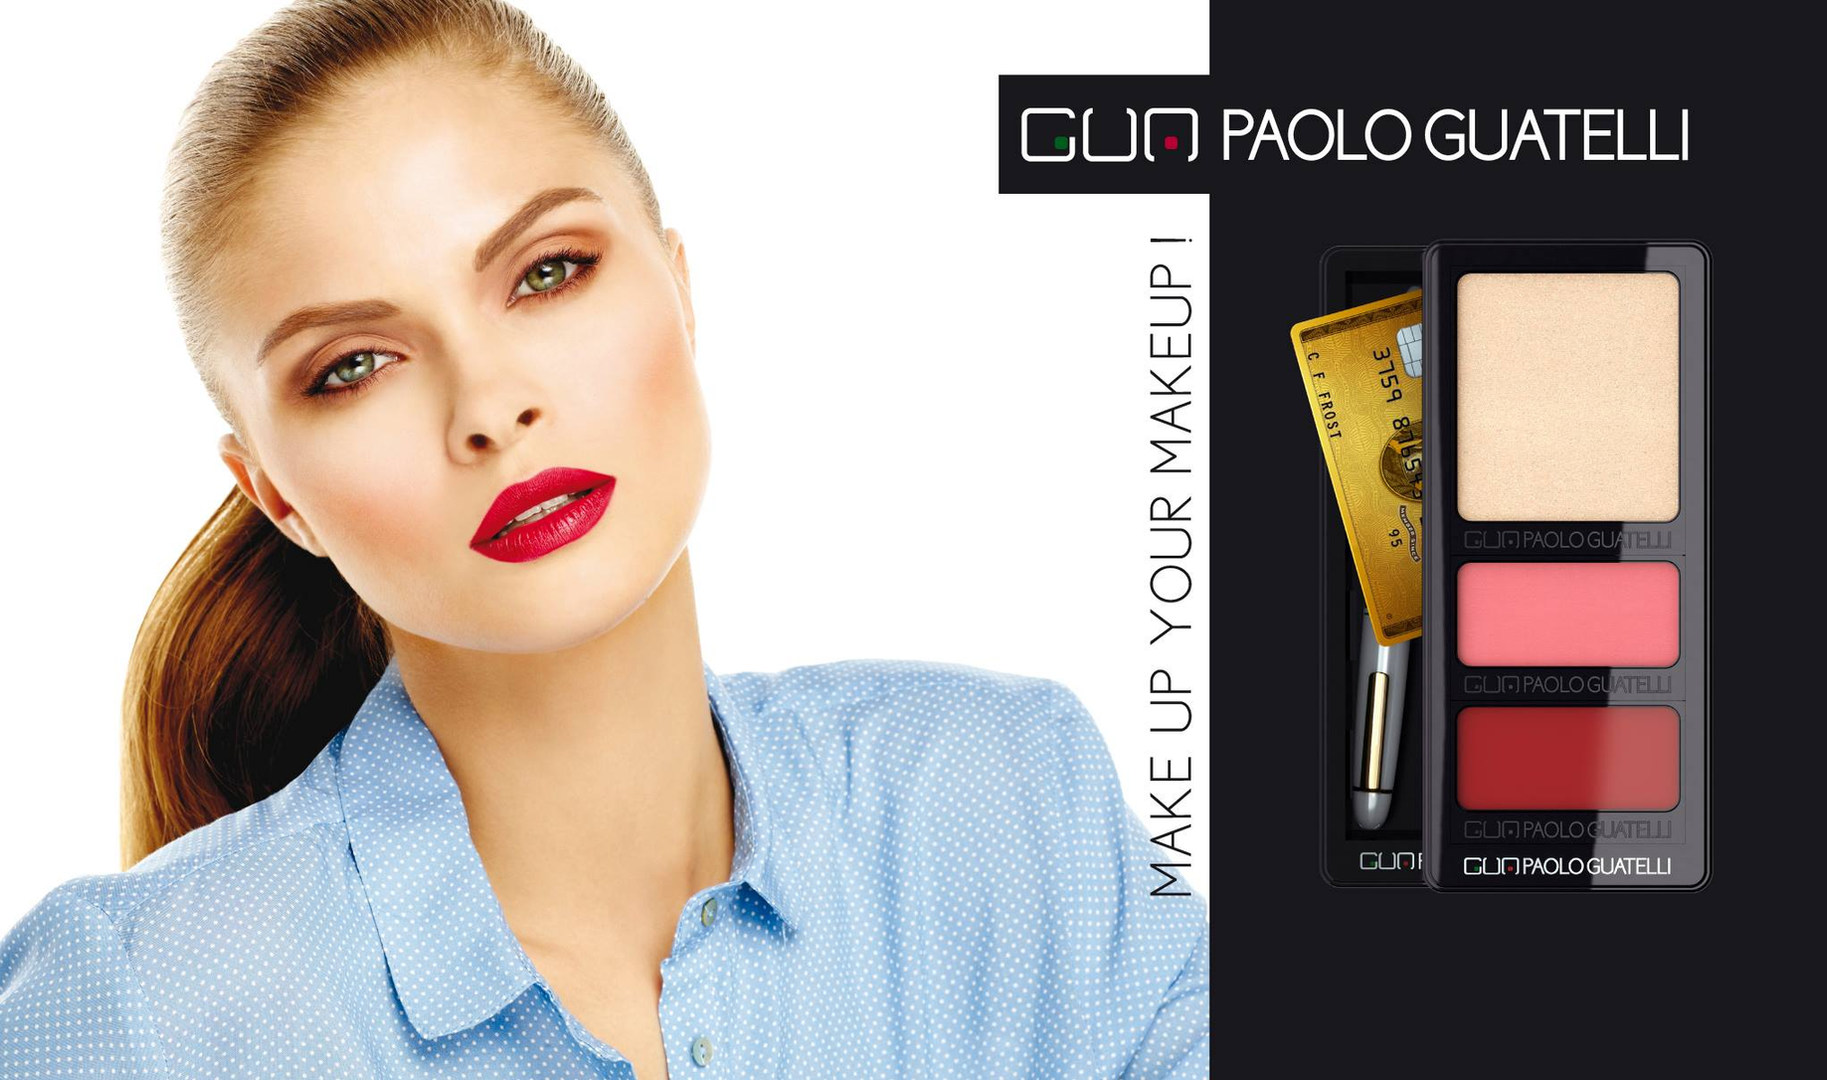 Maquillage Paolo Guatelli